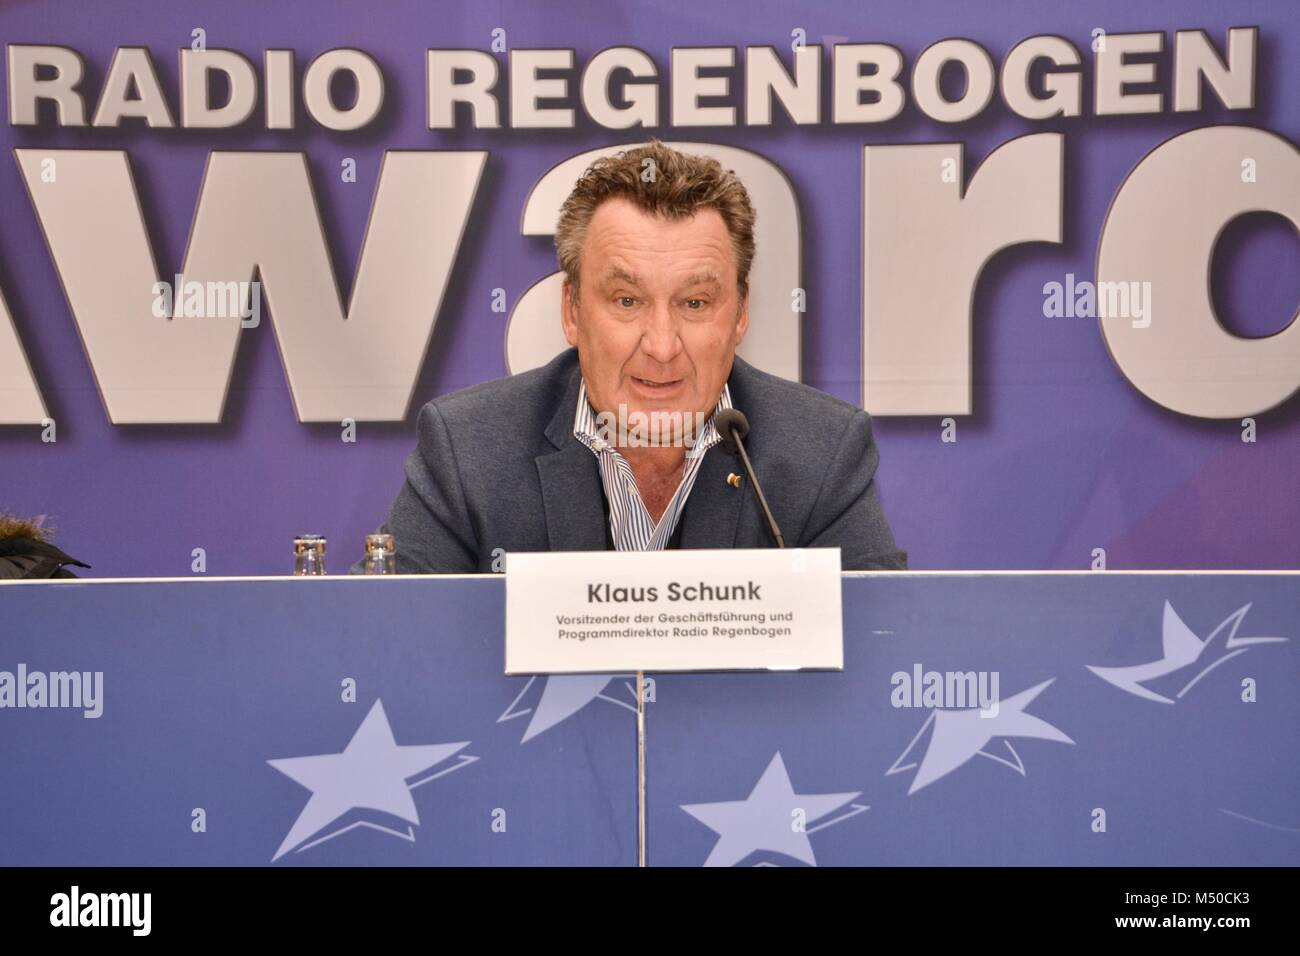 "Rust, Germany, 19th February, 2018, press conference ""Radio Regenbogen AWARD 2018"" Credit: mediensegel/Alamy Live Stock Photo"